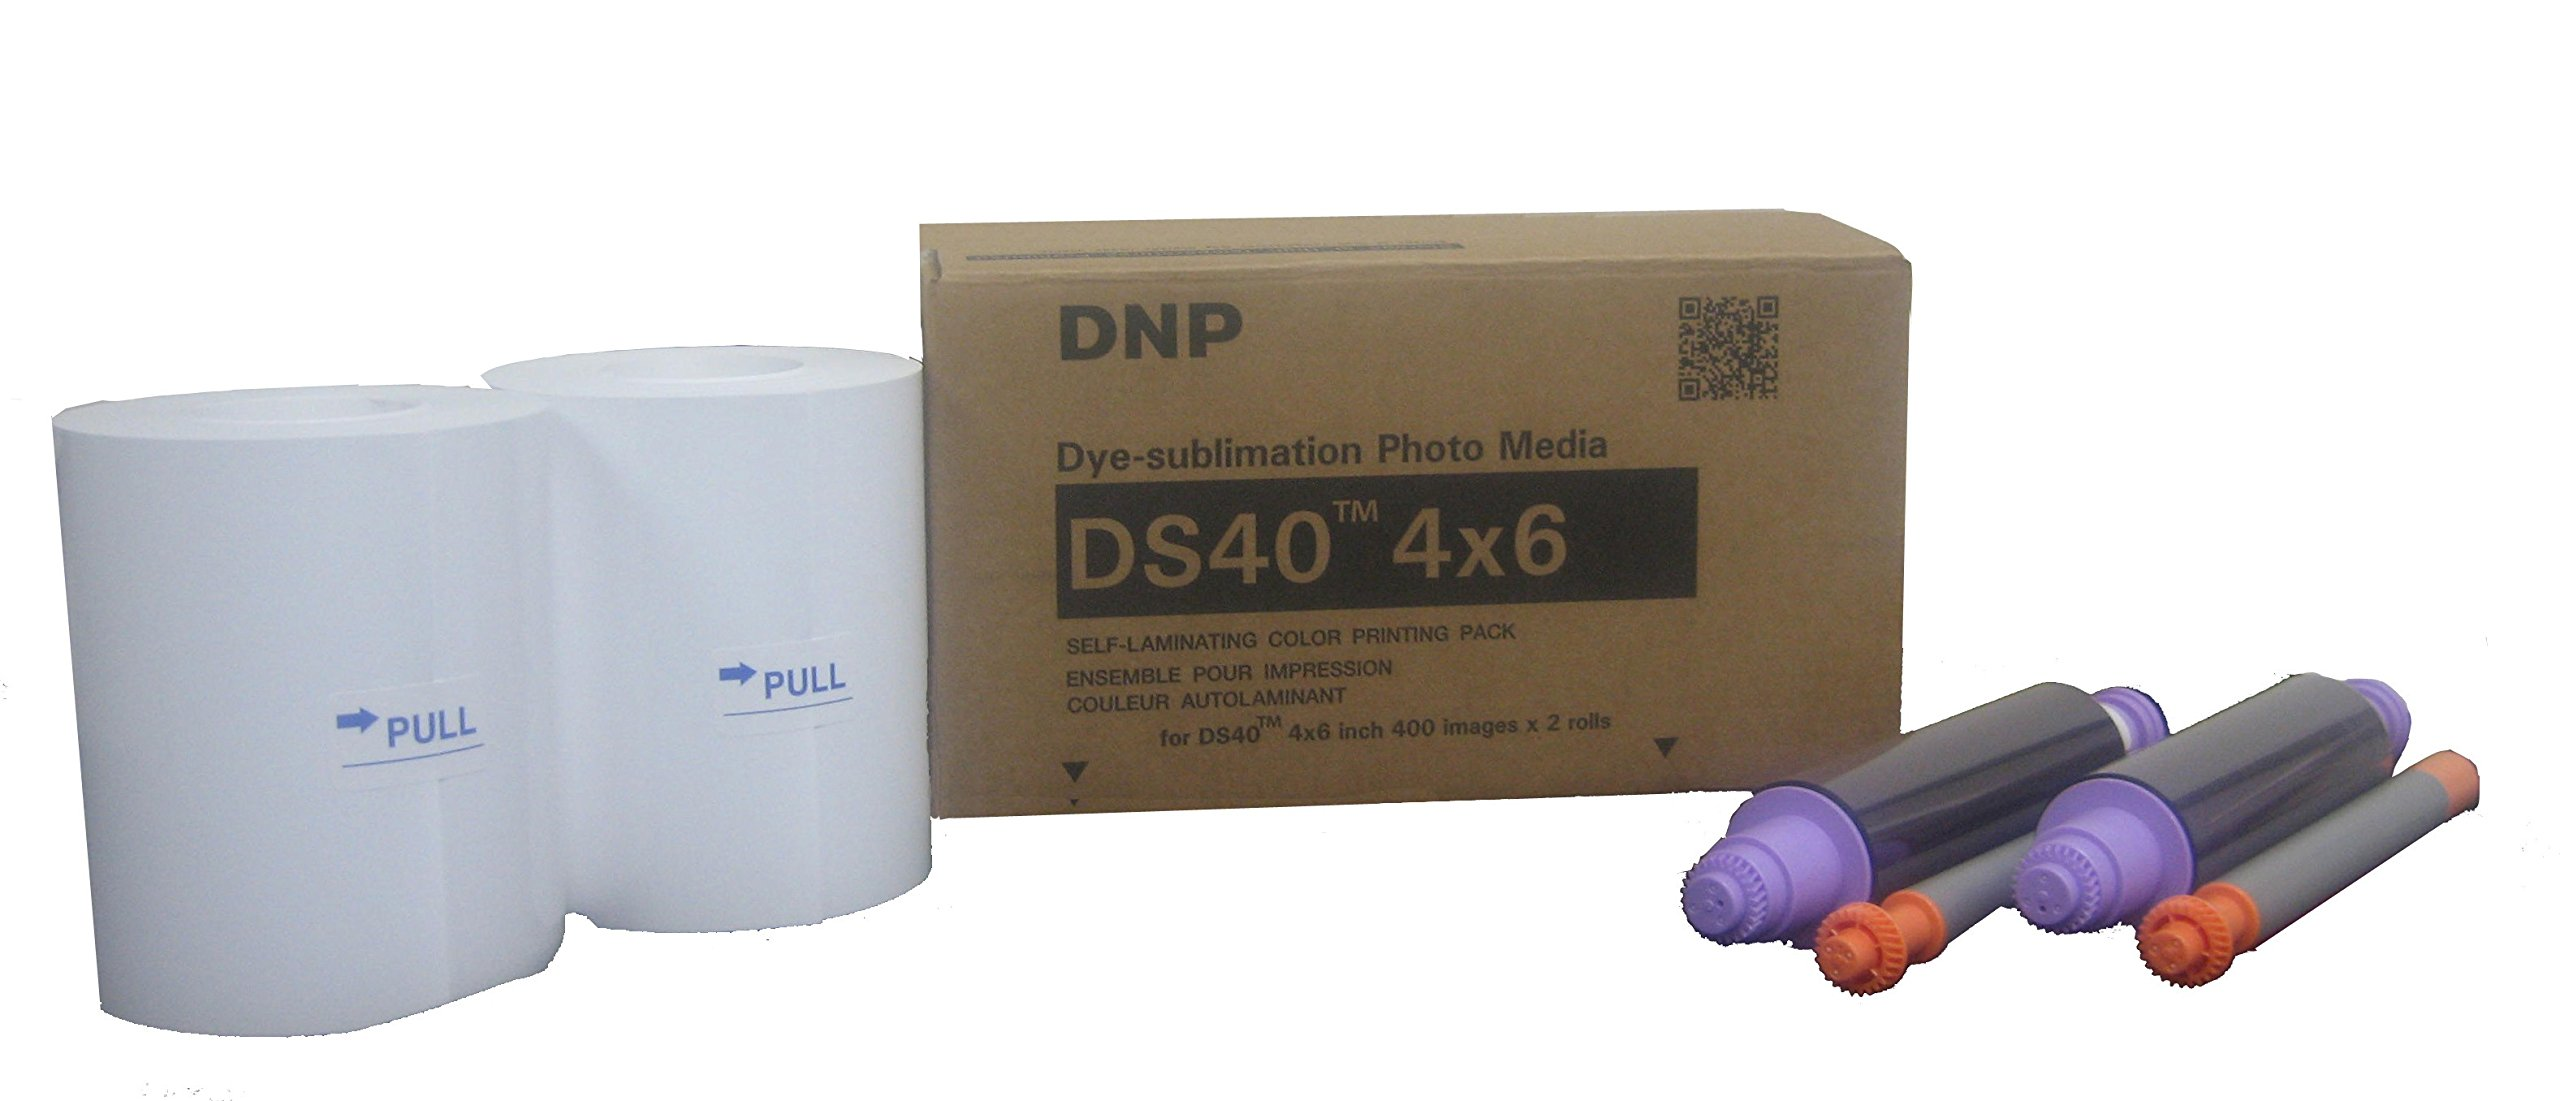 DNP DS40 Dyesub Printer Perforated Media 4x6/800 Glossy Prints (2 Rolls of 400) by DNP DS40